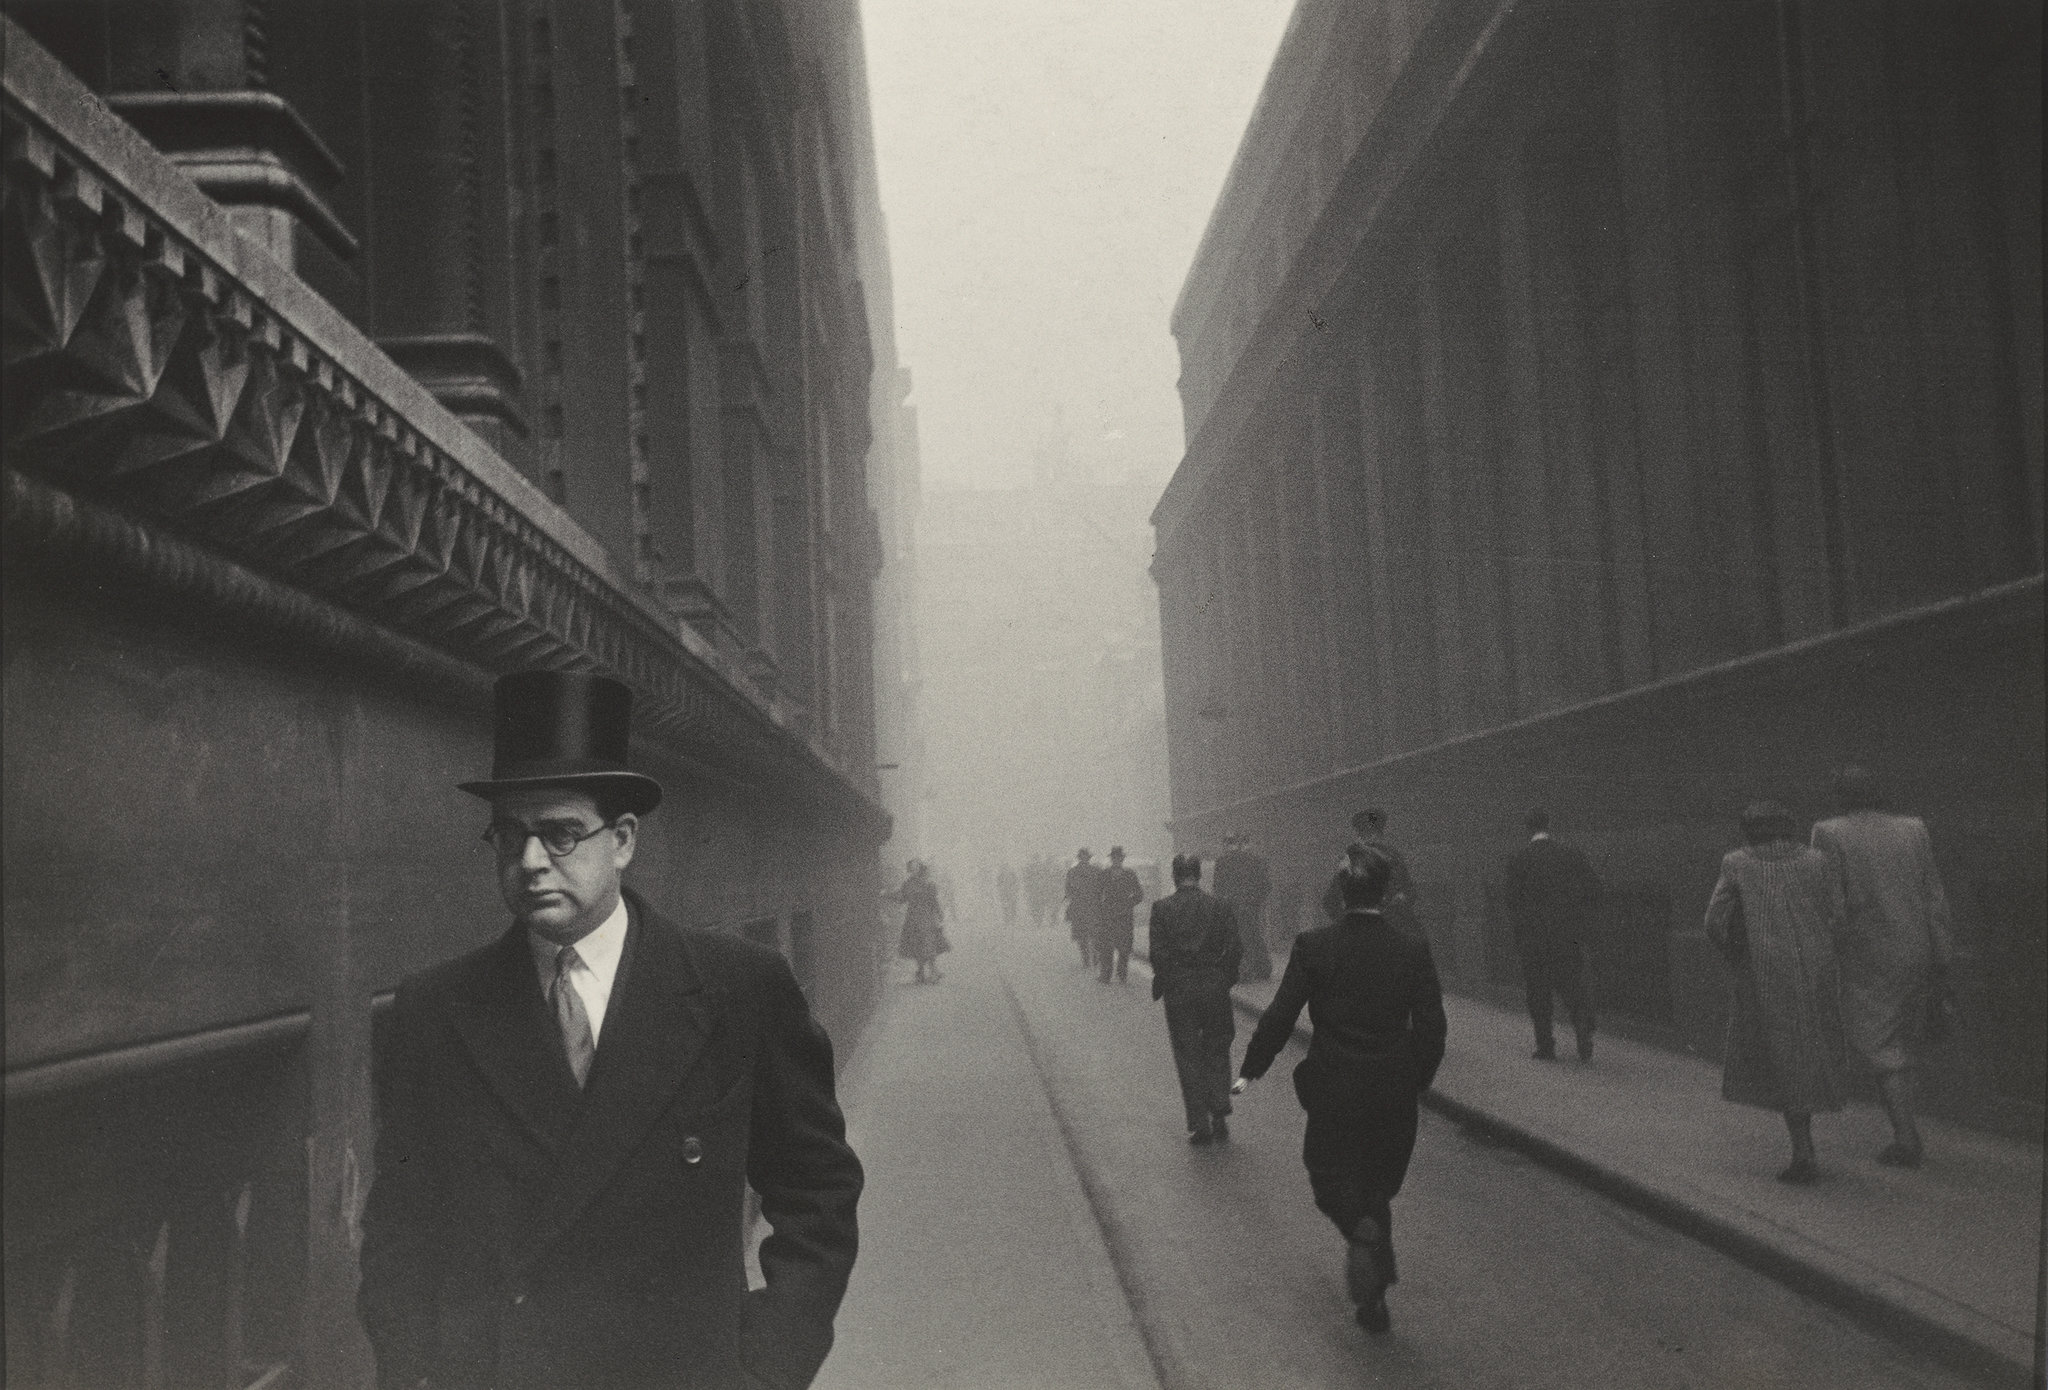 city-of-london-robert-frank